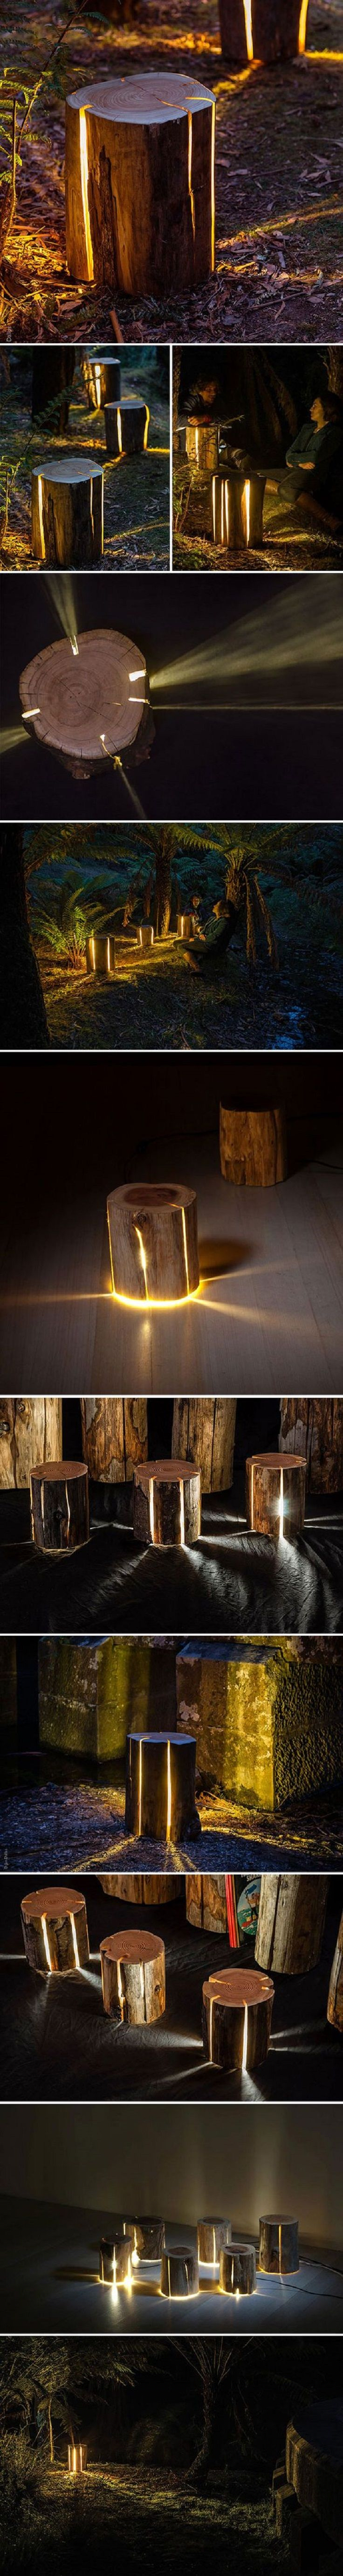 Cracked Logs Which are Bursting with Light - 9 Hyper-Creative DIY Outdoor Lighting Ideas For Your Backyard